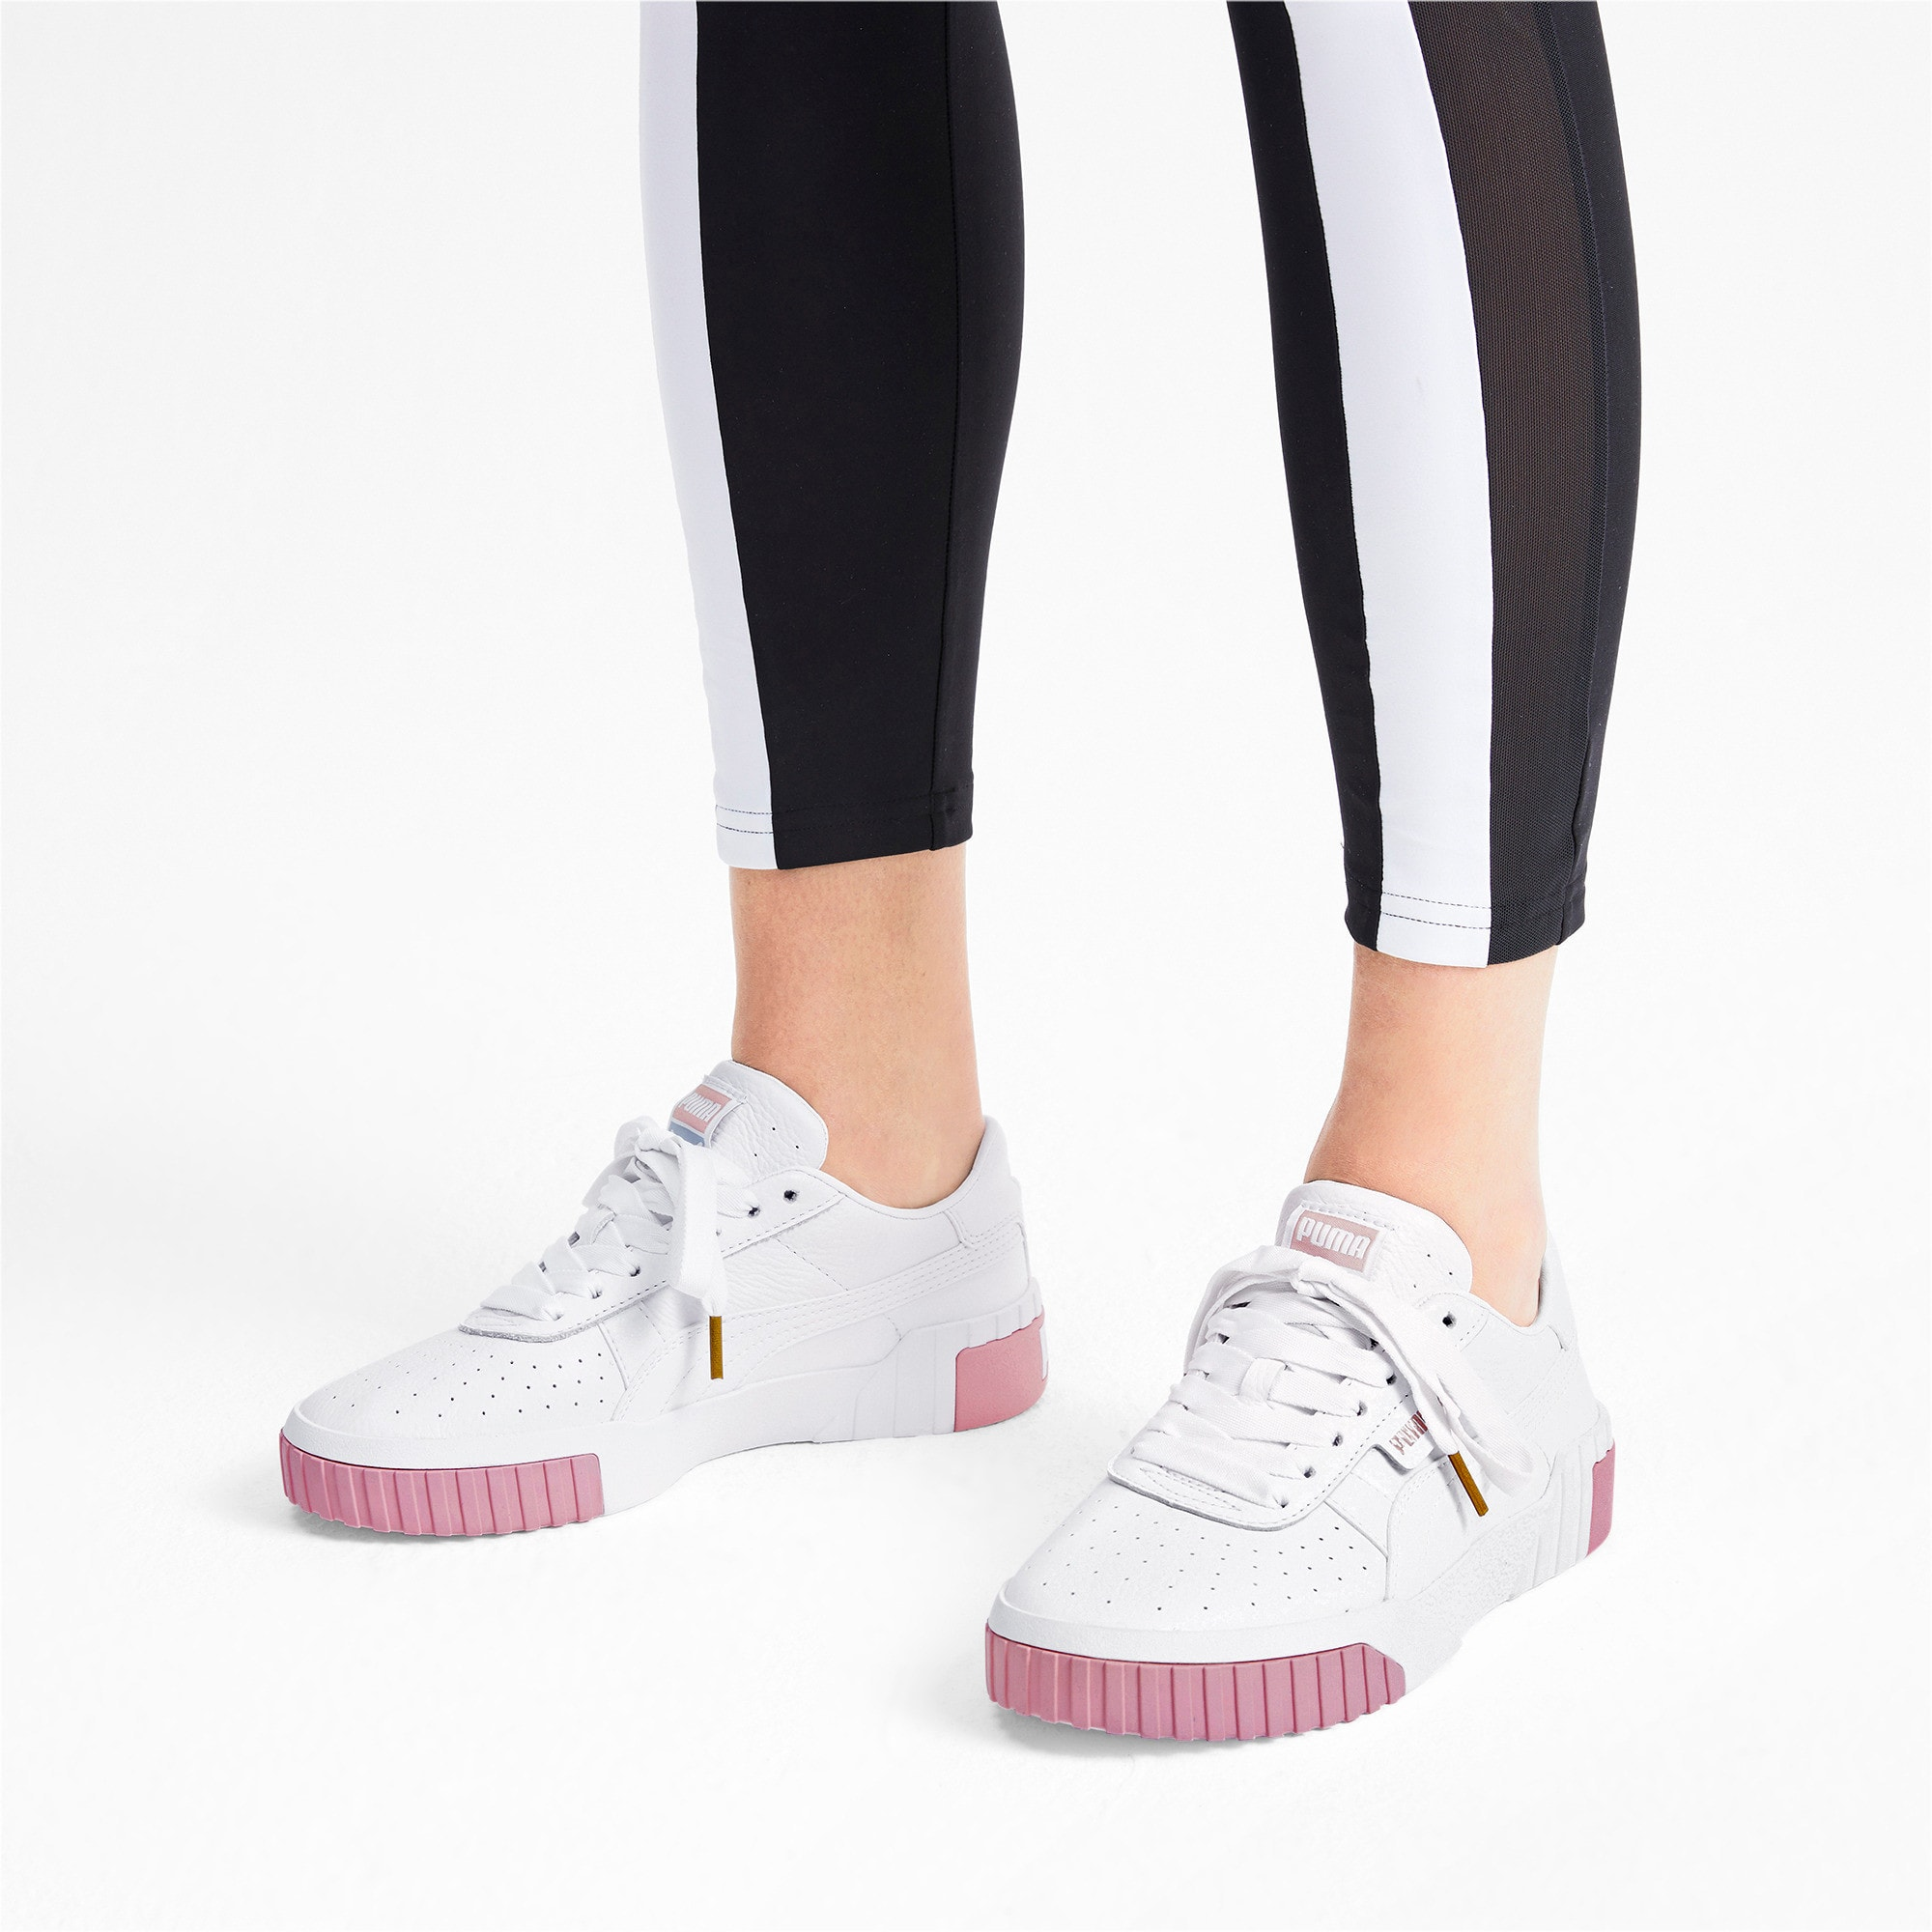 Thumbnail 3 of Cali Women's Trainers, Puma White-Rose Gold, medium-IND